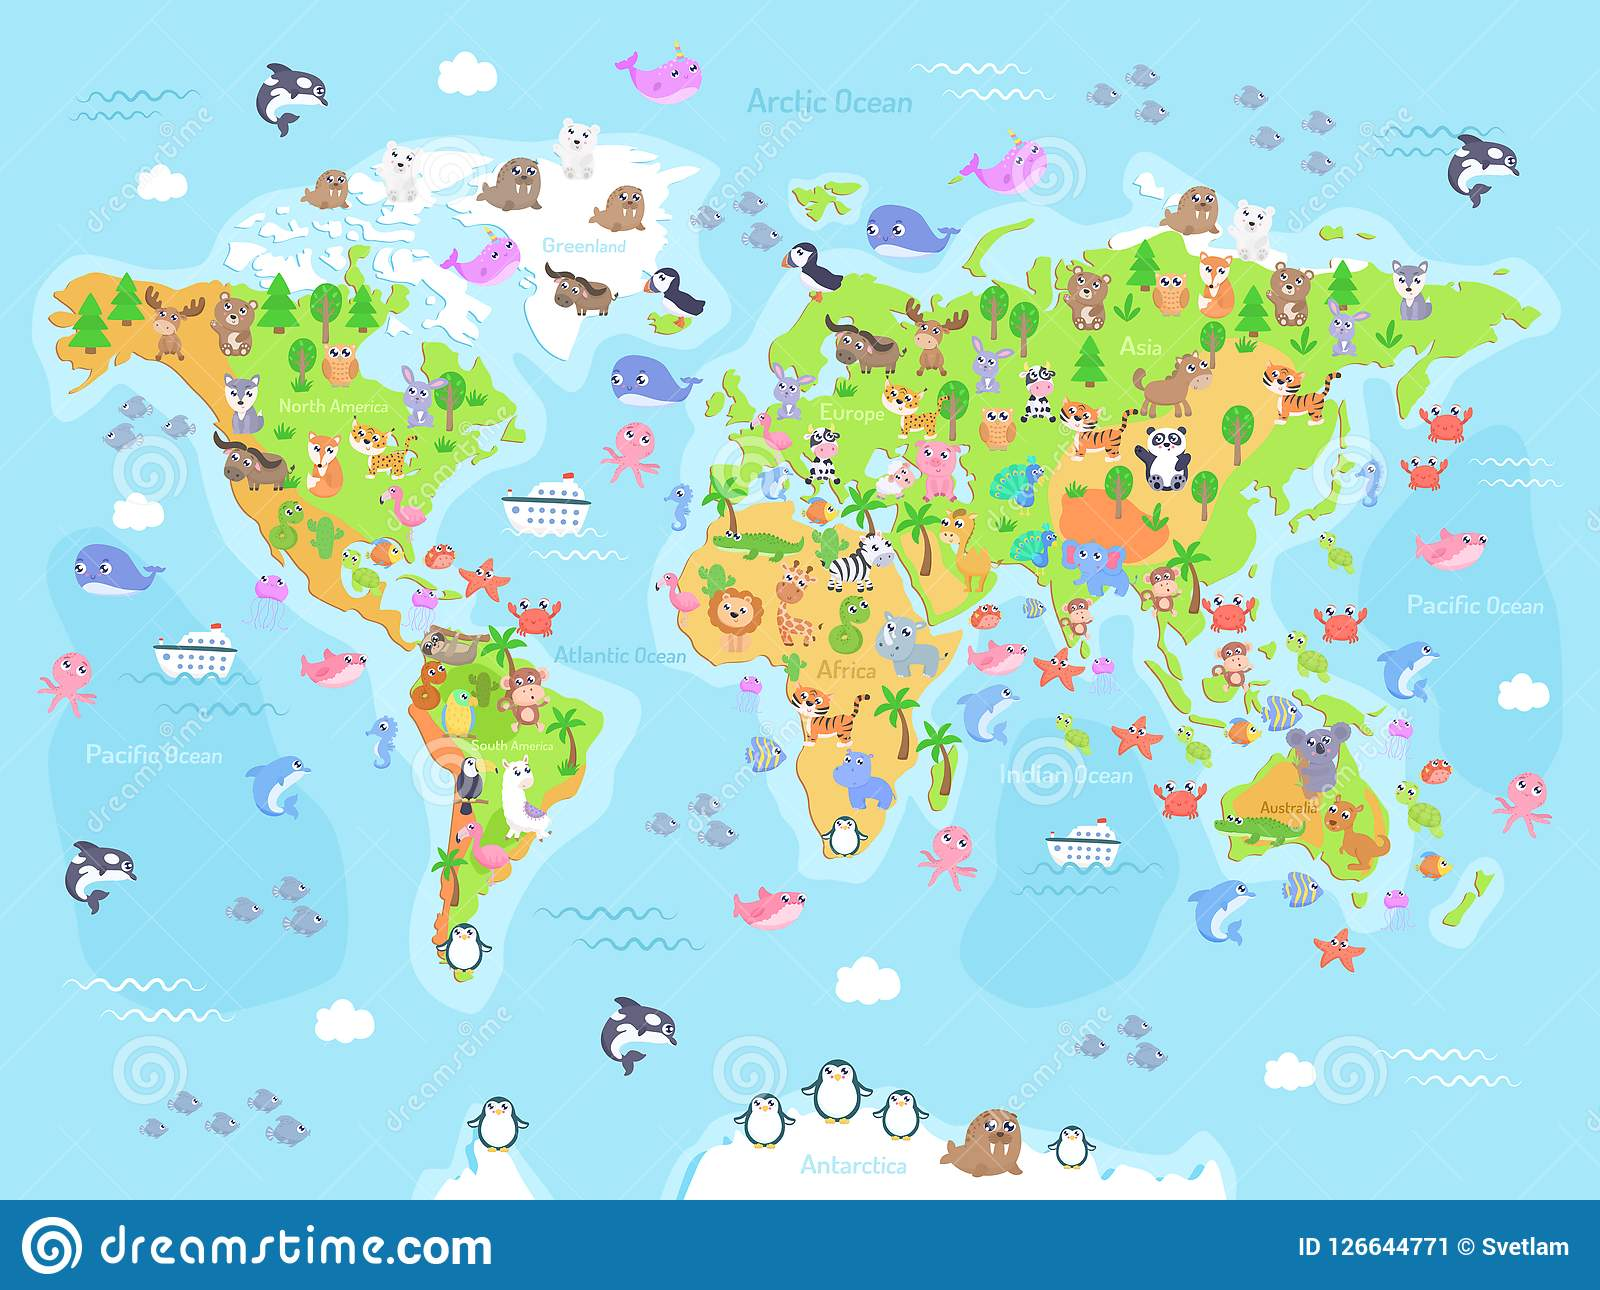 Vector Illustration Of World Map With Animals For Kids. Stock ... on playas n. america, rivers america, map italy, map europe, funny america, ohio state america, states in america, latin america, map mexico, map canada, north america, atlas america, map belize, club america, central america, map georgia, vincennes map america, map australia, physical map america,